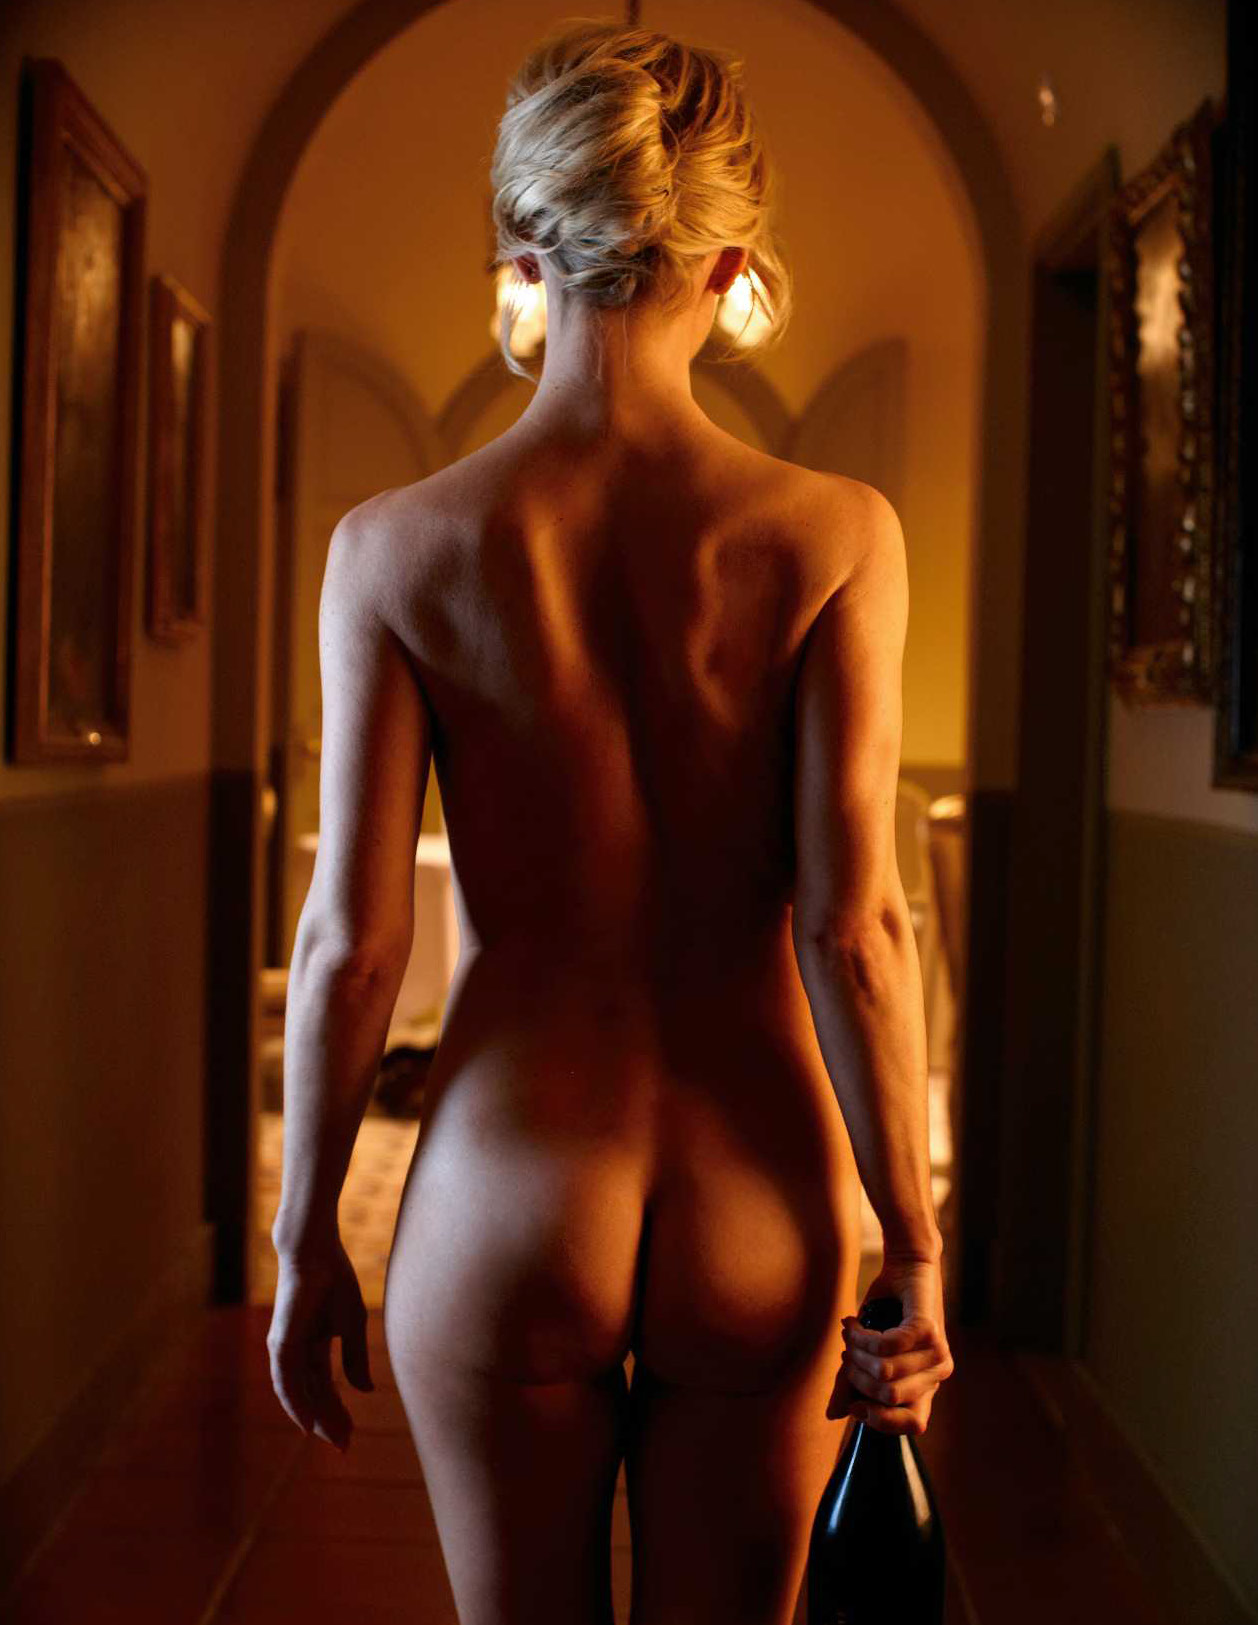 Andrea Elson Nackt naked photos of isabell hertel – #thefappening